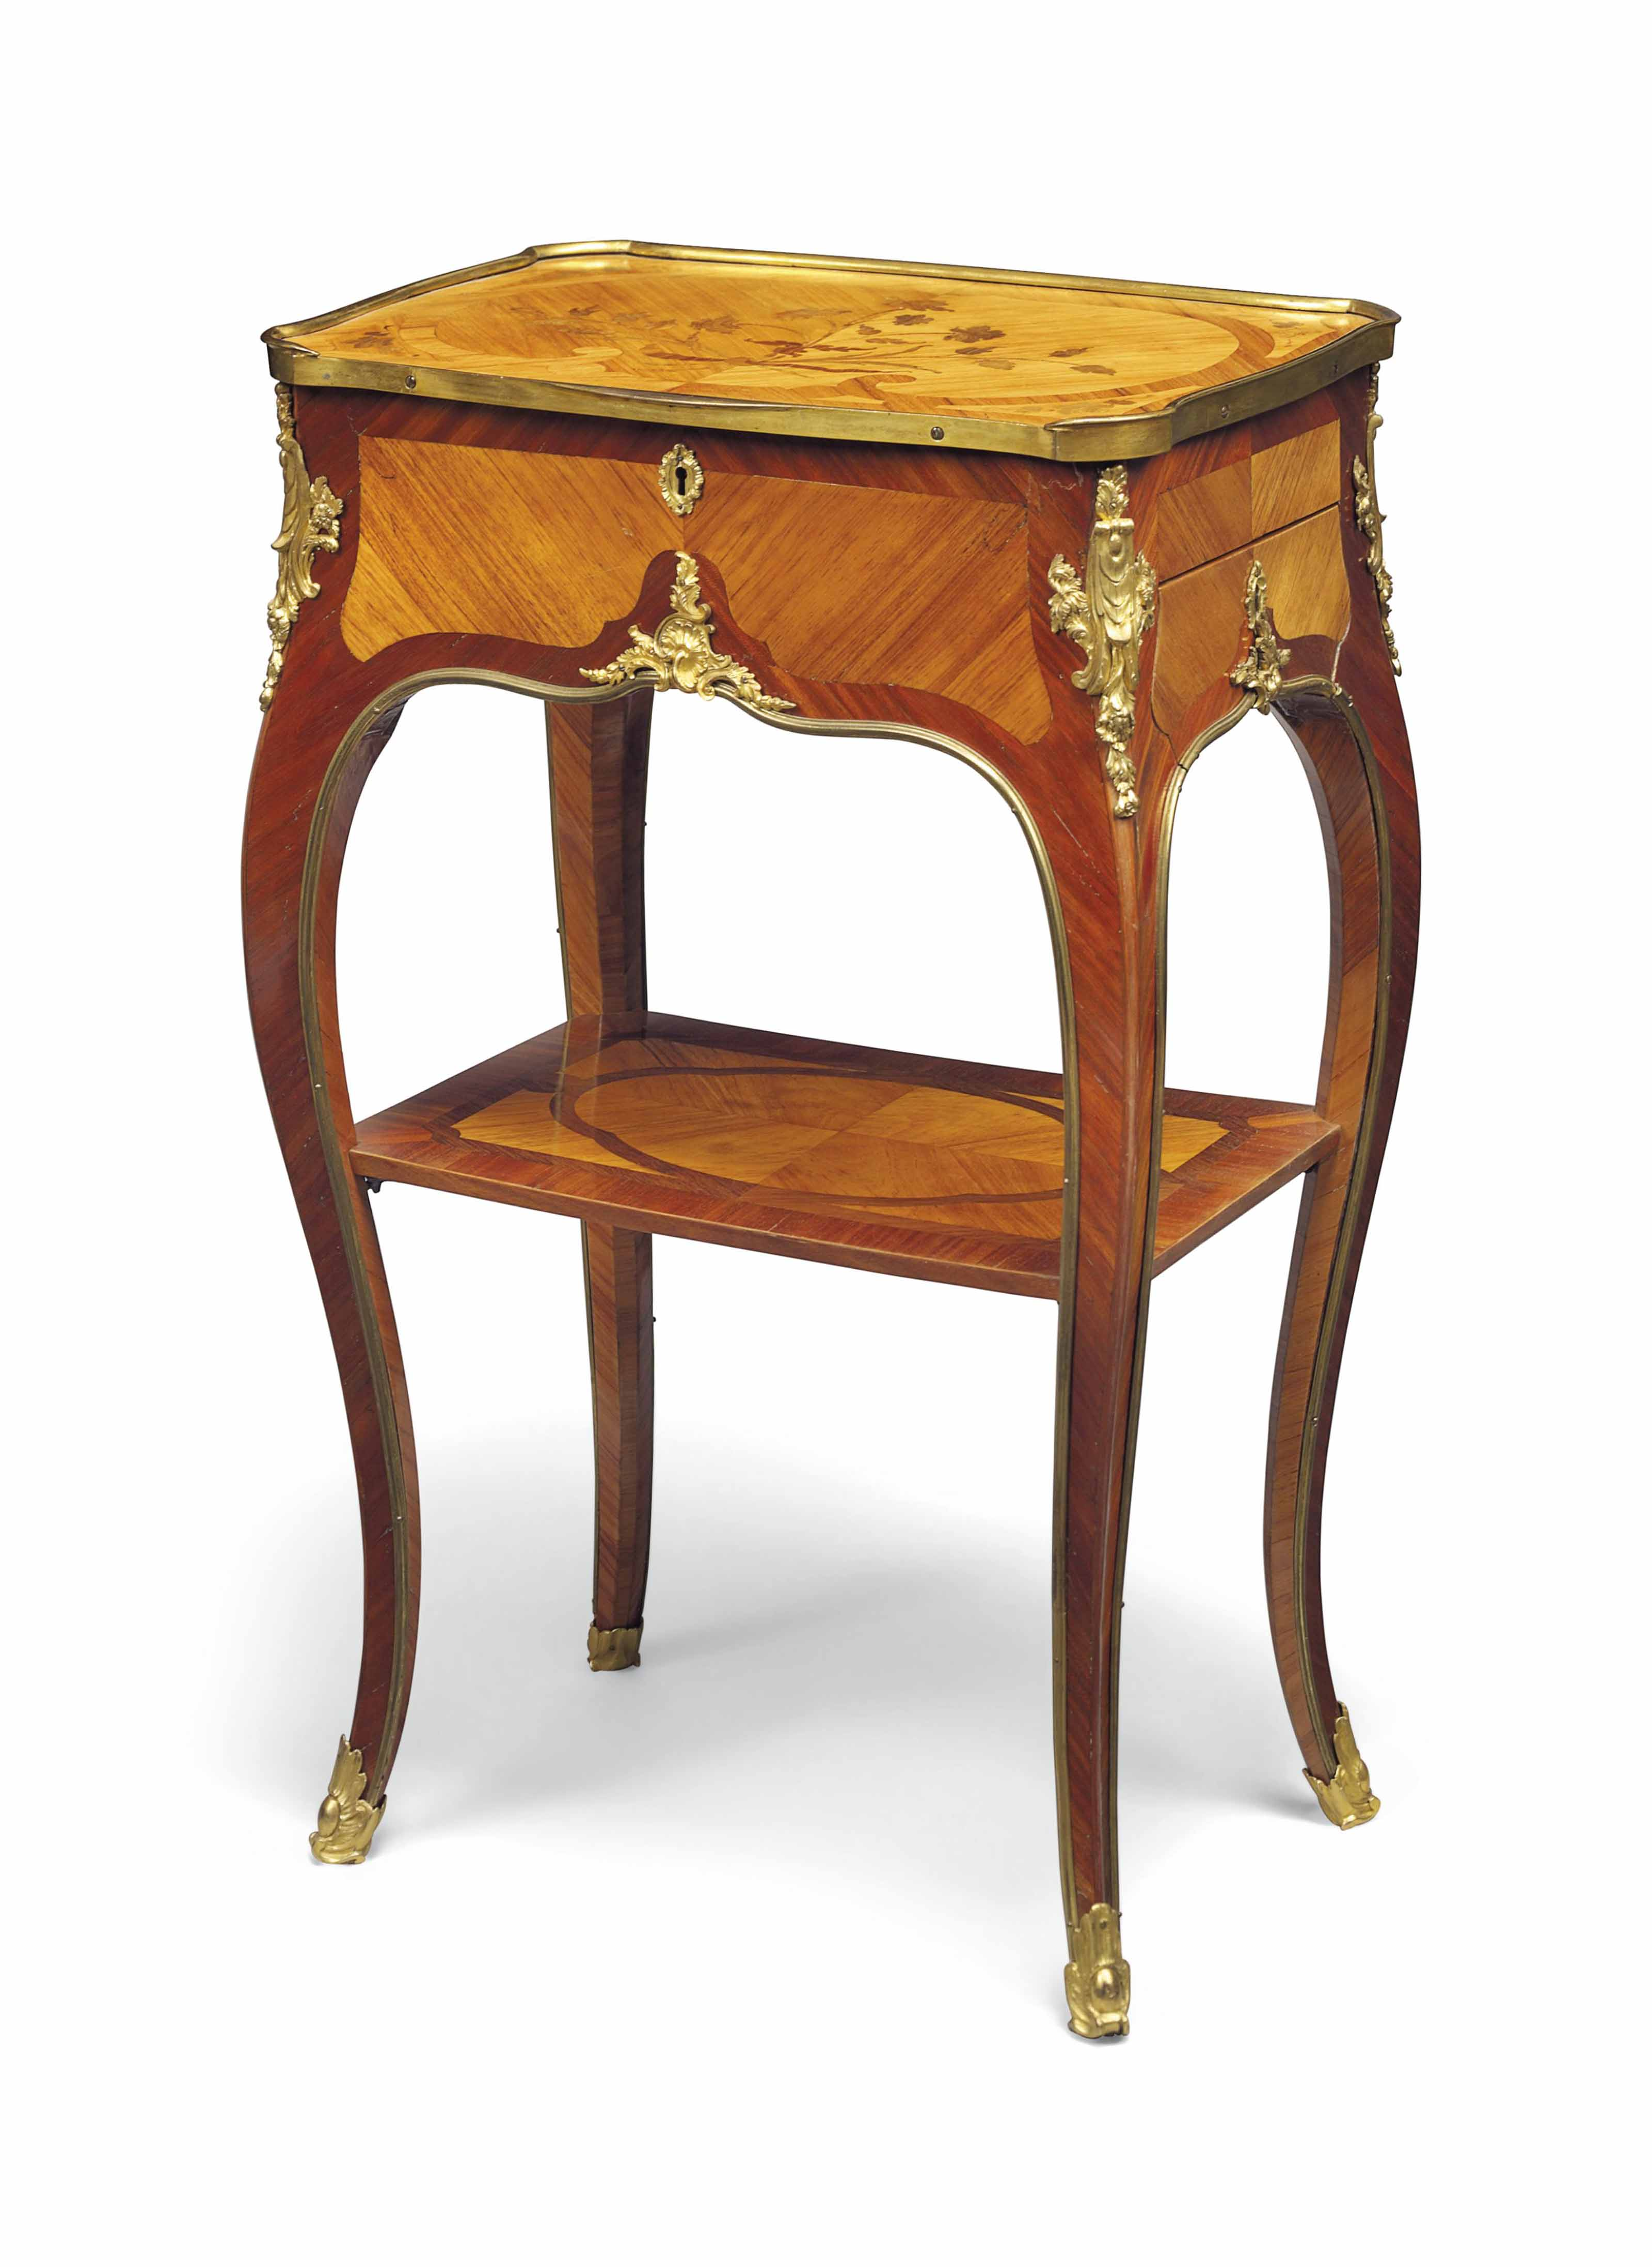 A LOUIS XV ORMOLU-MOUNTED TULIPWOOD, BOIS SATINE, AMARANTH AND BOIS-DE-BOUT MARQUETRY TABLE EN CHIFFONNIERE